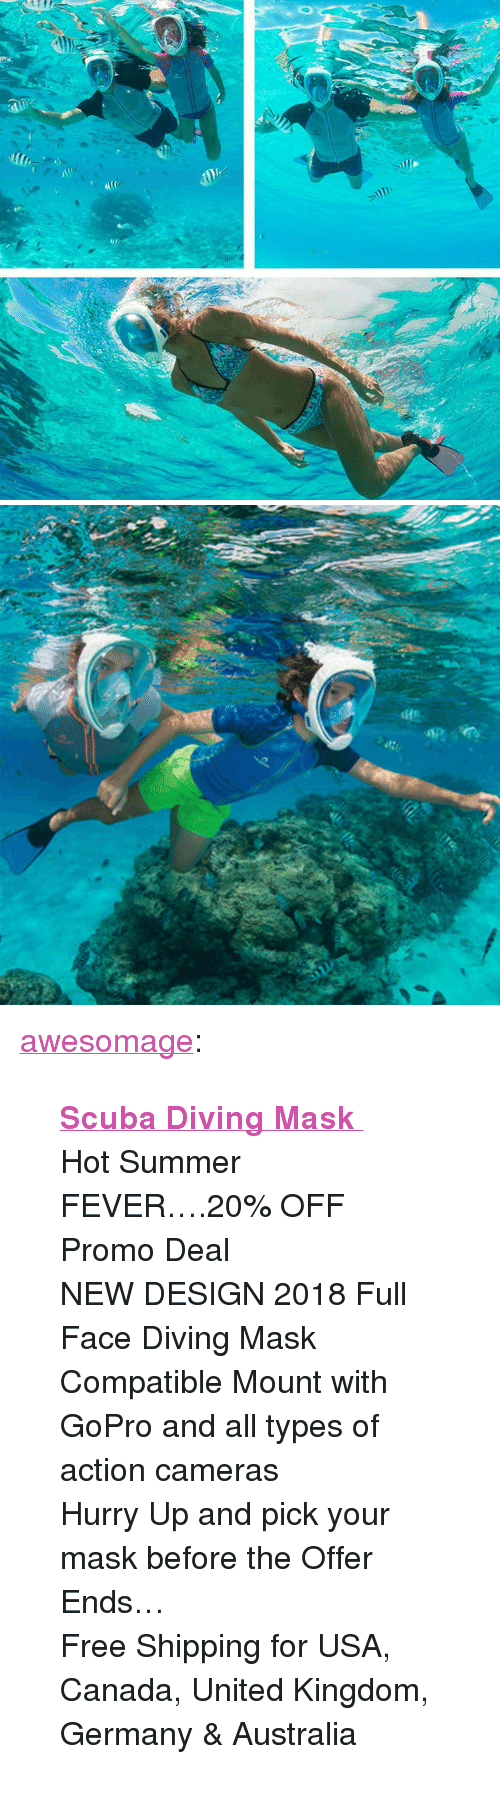 """Sports, Tumblr, and GoPro: <p><a href=""""https://awesomage.tumblr.com/post/174444925745/scuba-diving-mask-hot-summer-fever20-off"""" class=""""tumblr_blog"""">awesomage</a>:</p><blockquote> <p><b><a href=""""https://shoppinggeek-store.com/collections/water-sports-gear/products/scuba-diving-mask-scuba-full-face-snorkeling-mask-underwater-anti-fog-snorkeling-mask-for-swimming-spearfishing-scuba-diving"""">  Scuba Diving Mask   </a></b><br/></p> <p style="""""""">  Hot Summer FEVER….20% OFF Promo Deal<br/>NEW DESIGN 2018 Full Face Diving Mask <br/>Compatible Mount with GoPro and all types of action cameras<br/>Hurry Up and pick your mask before the Offer Ends…<br/>Free Shipping for USA, Canada, United Kingdom, Germany &amp; Australia  <br/></p> </blockquote>"""